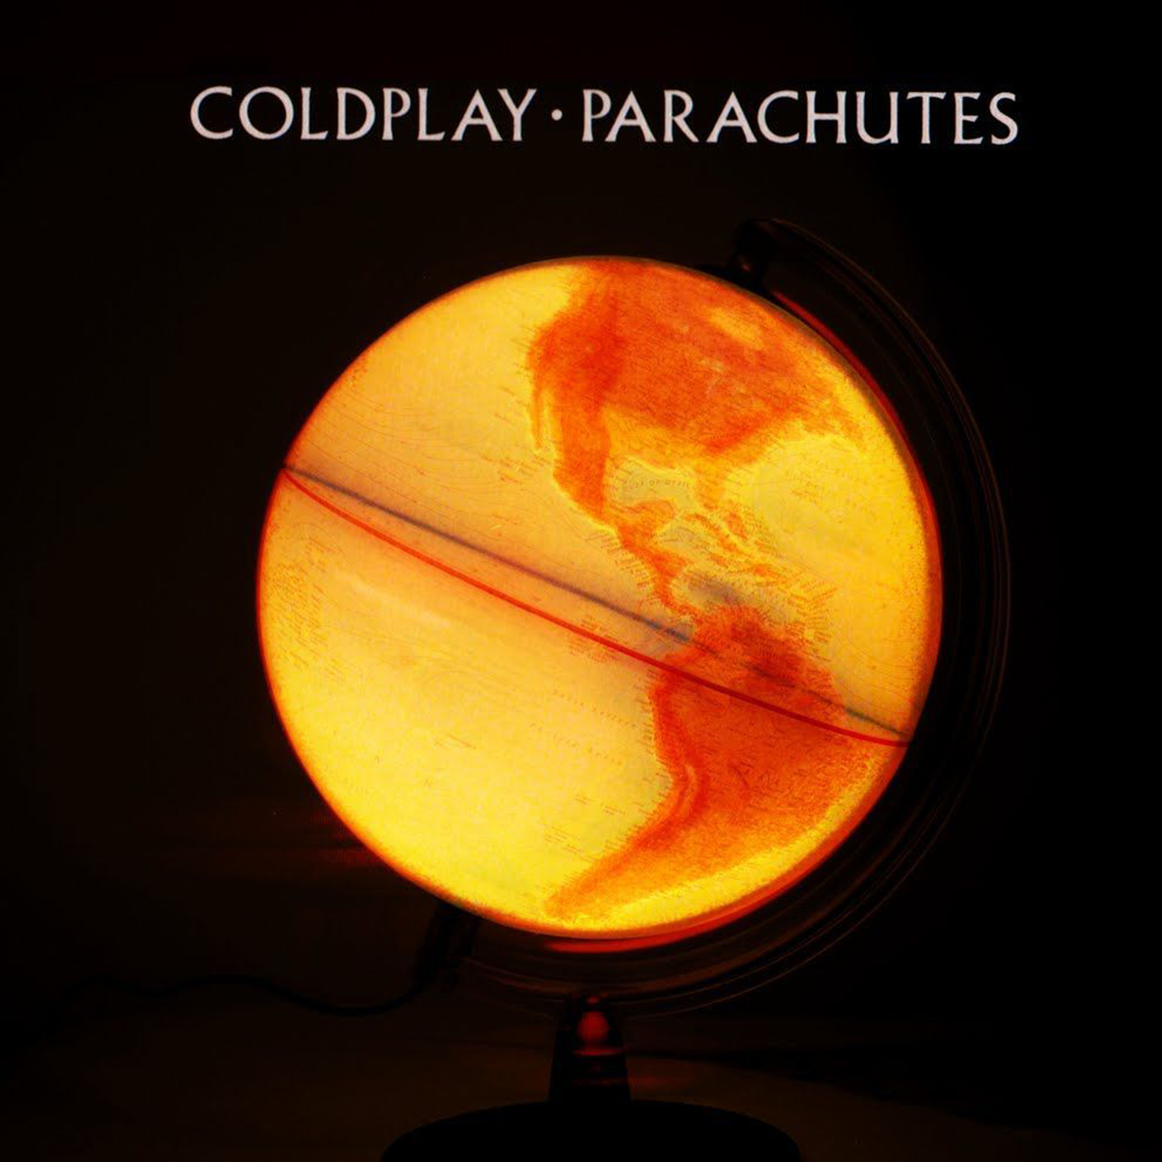 VINYL Coldplay • Parachutes / Translucent Yellow Vinyl (LP)